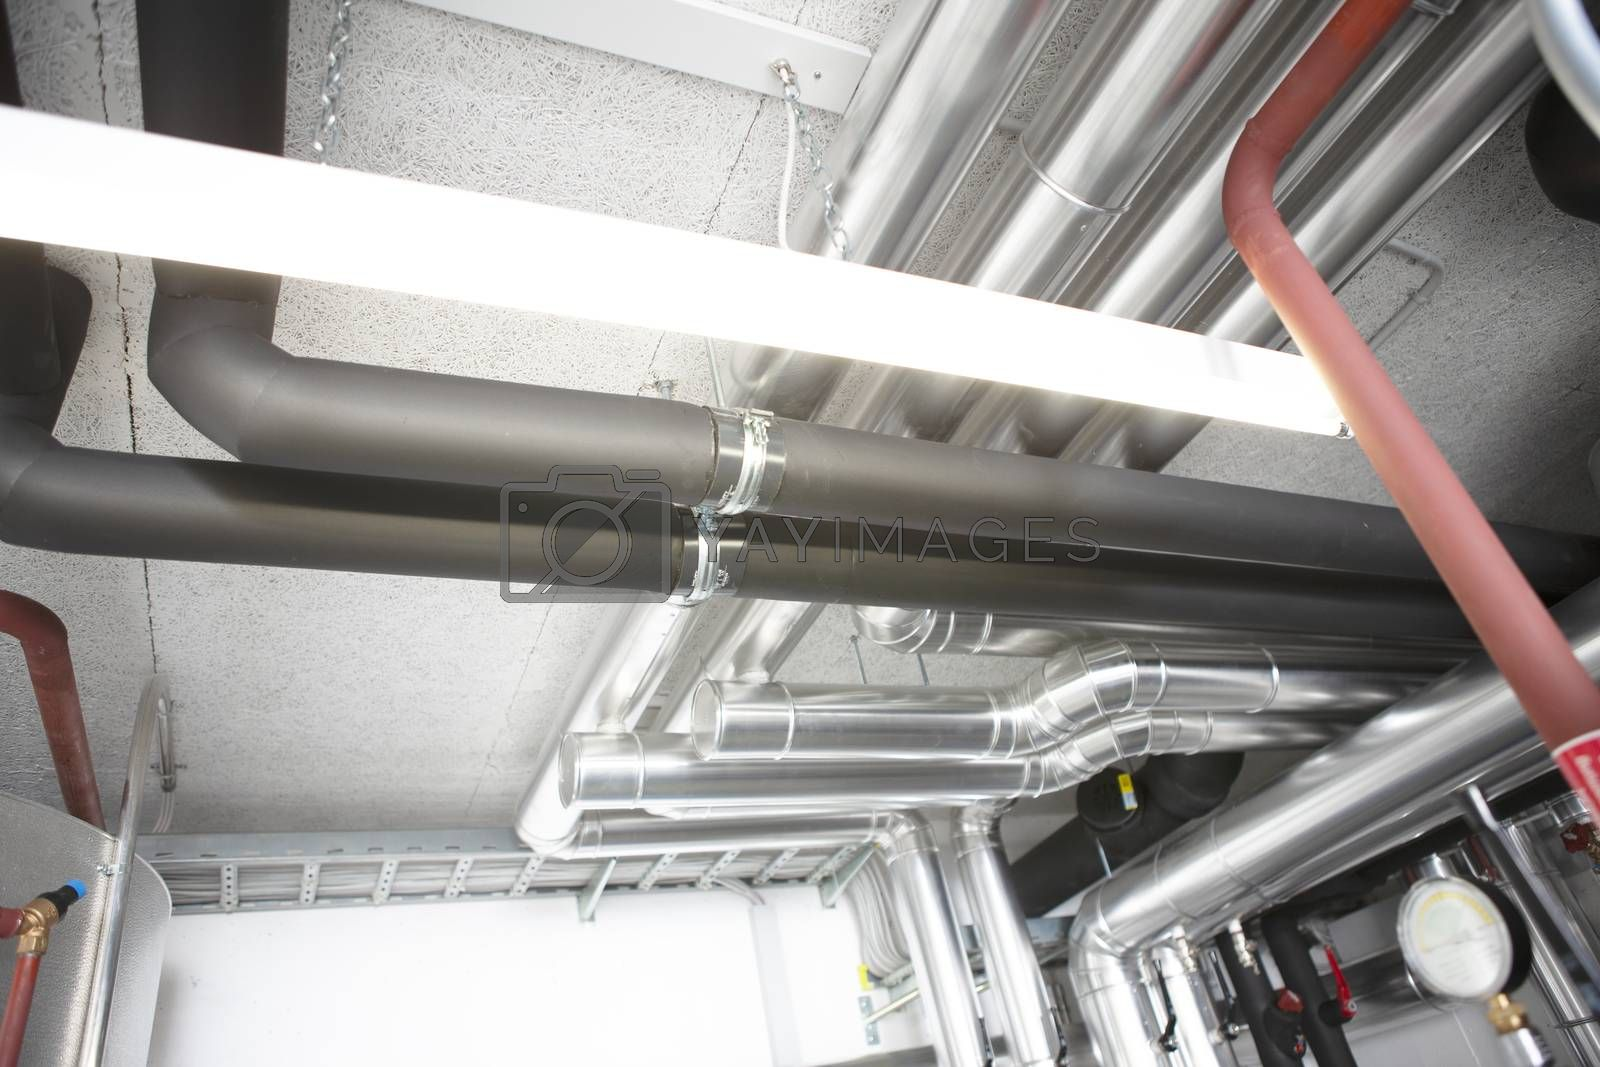 chrome pipes in heating and AC rooms in buildings of factories and hospital shot from below